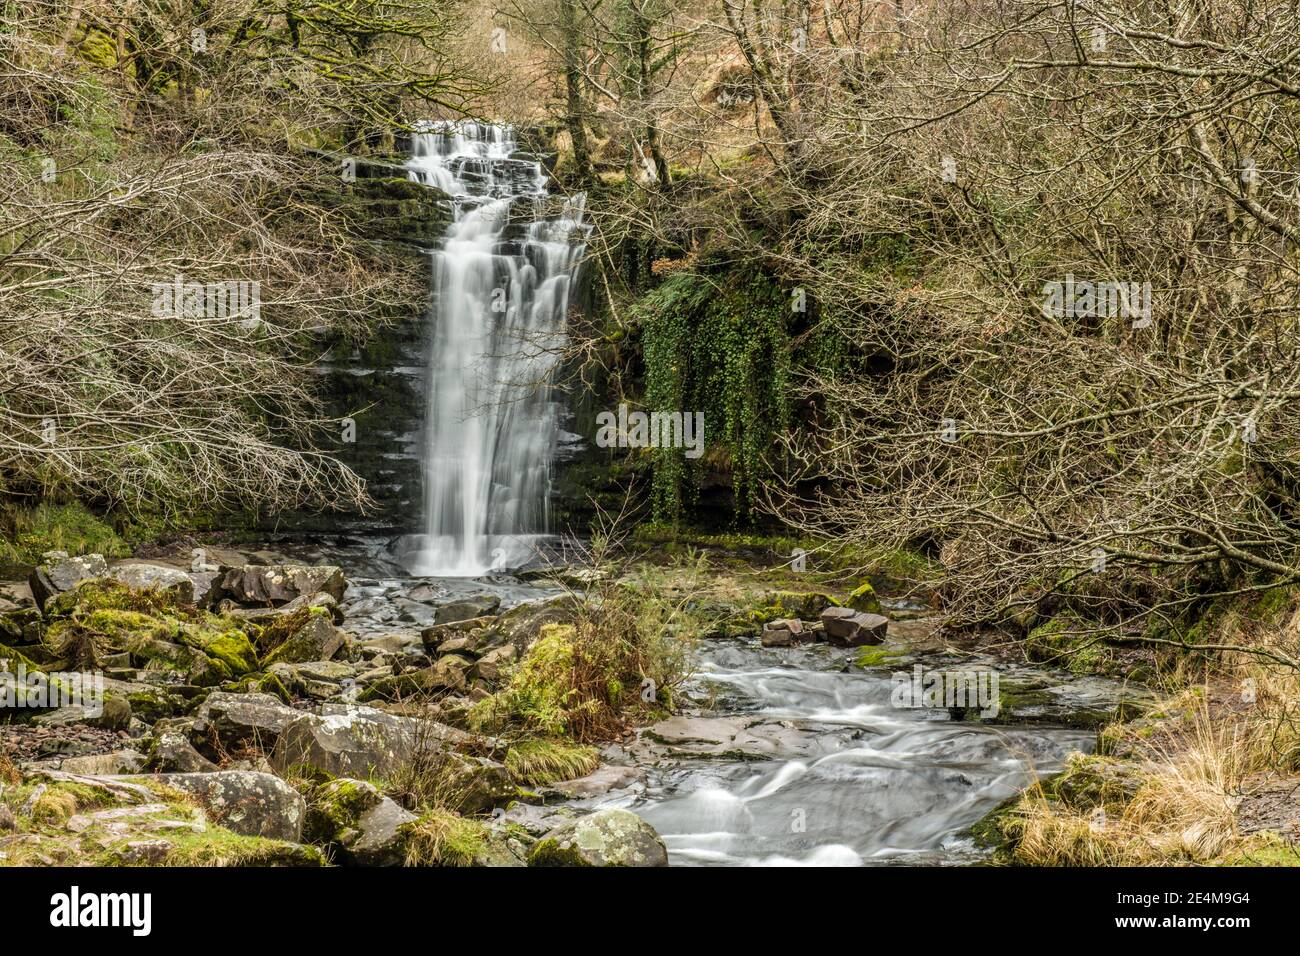 The Blaen y Glyn Waterfall on the River Caerfanell in the Central Brecon Beacons, in south Wales. Stock Photo